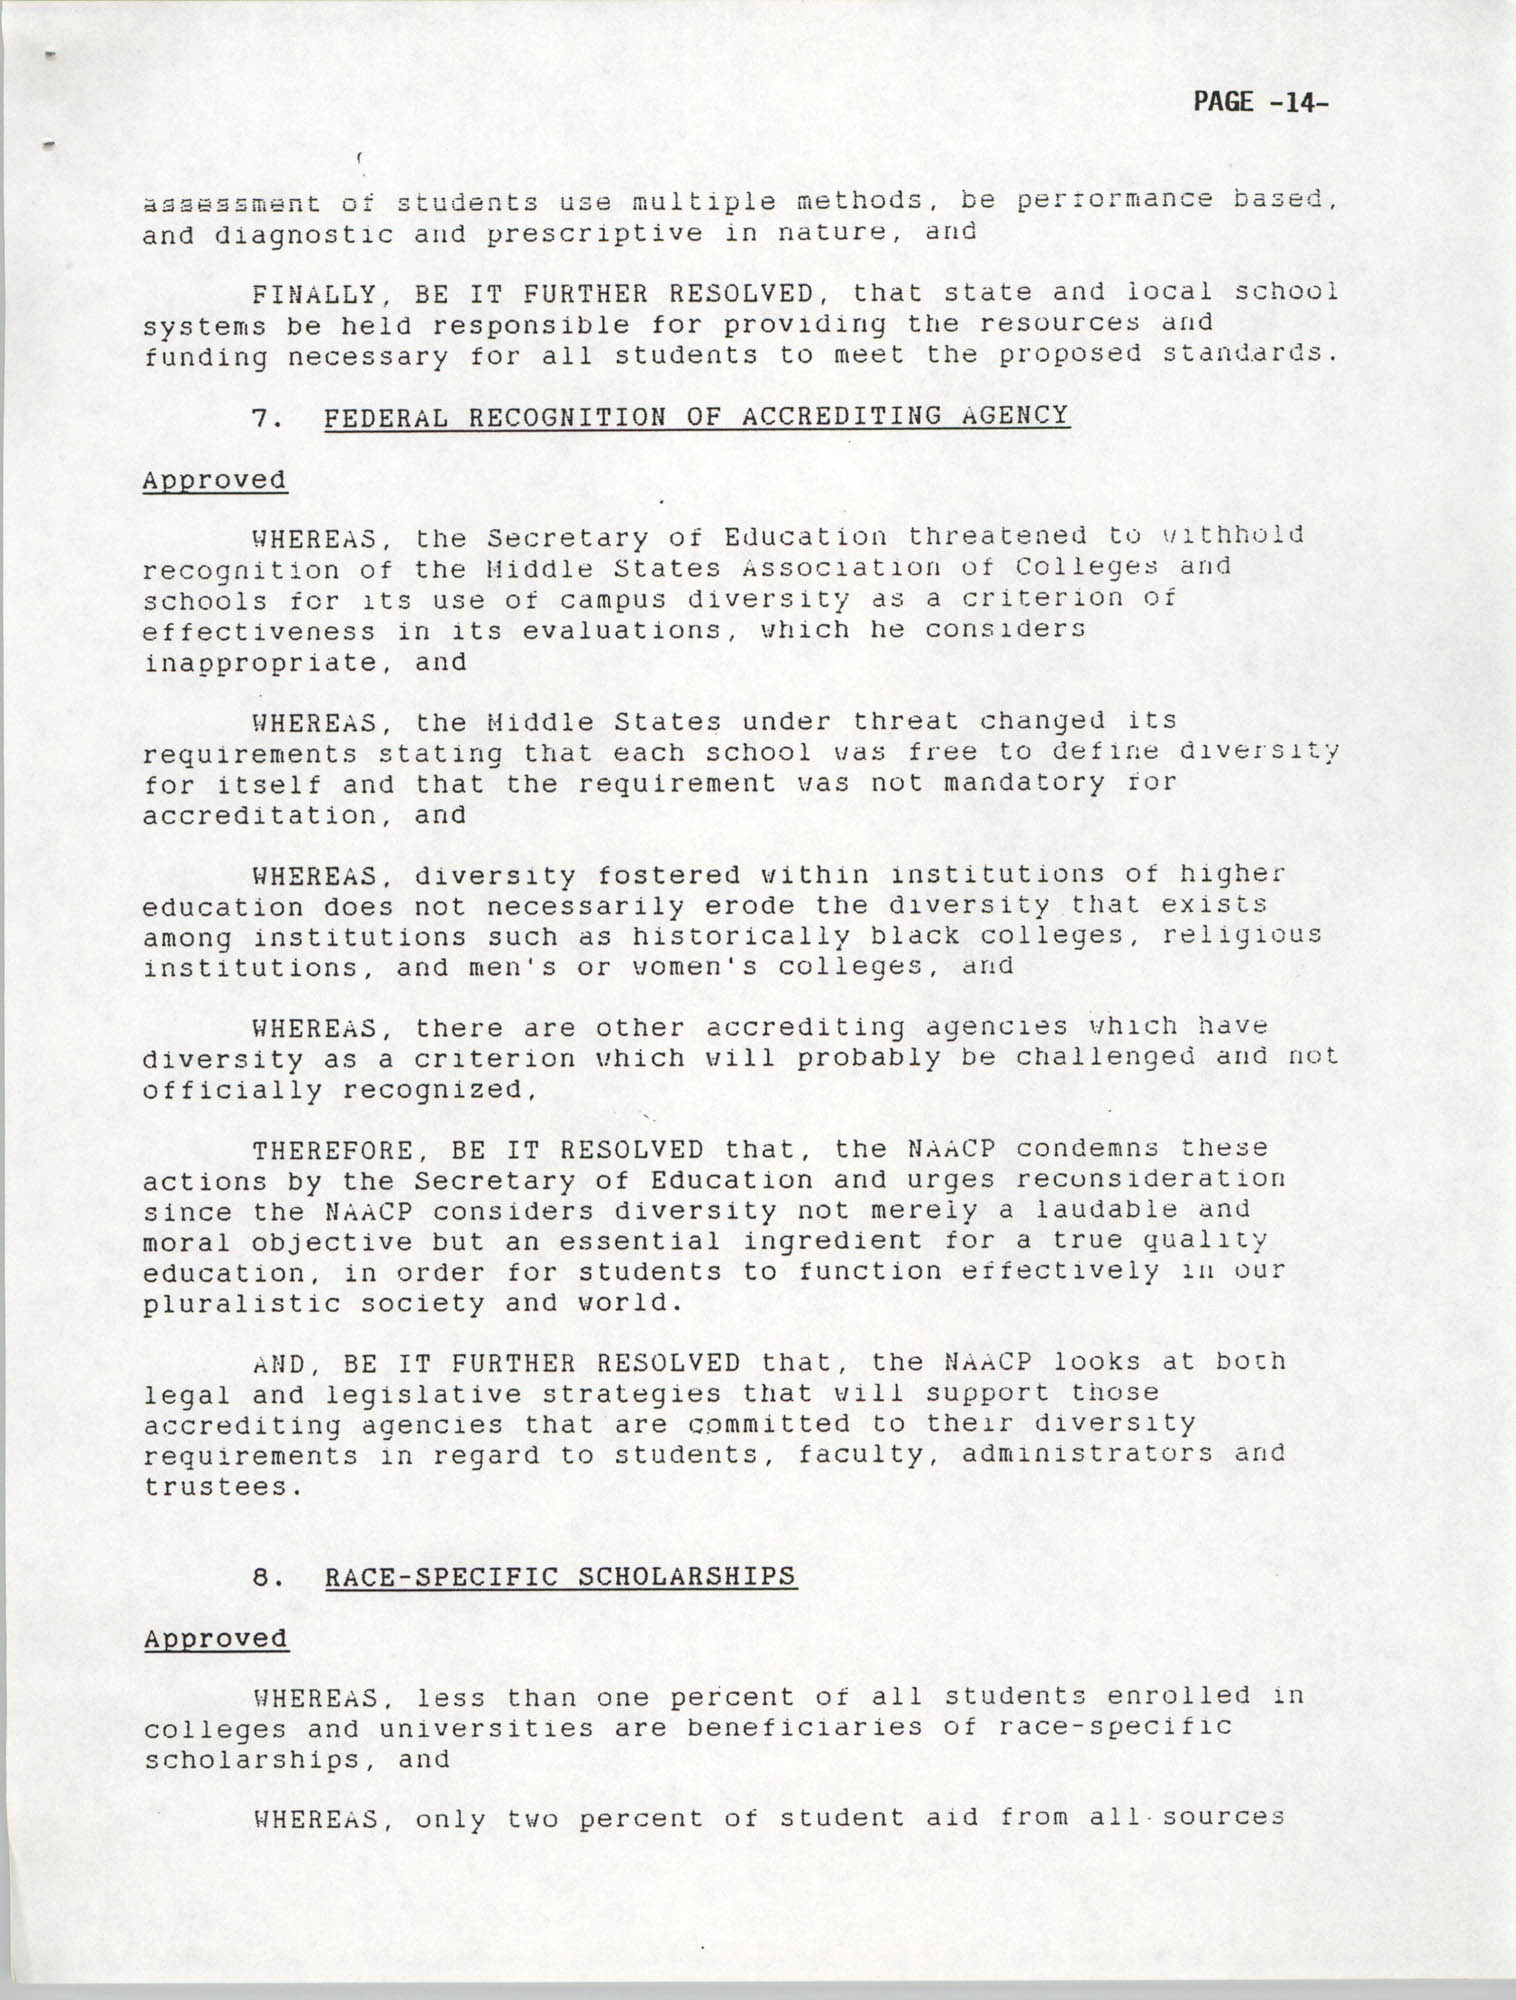 Resolutions Submitted Under Article X, Section 2 of the Constitution of the NAACP, 1992, Page 14